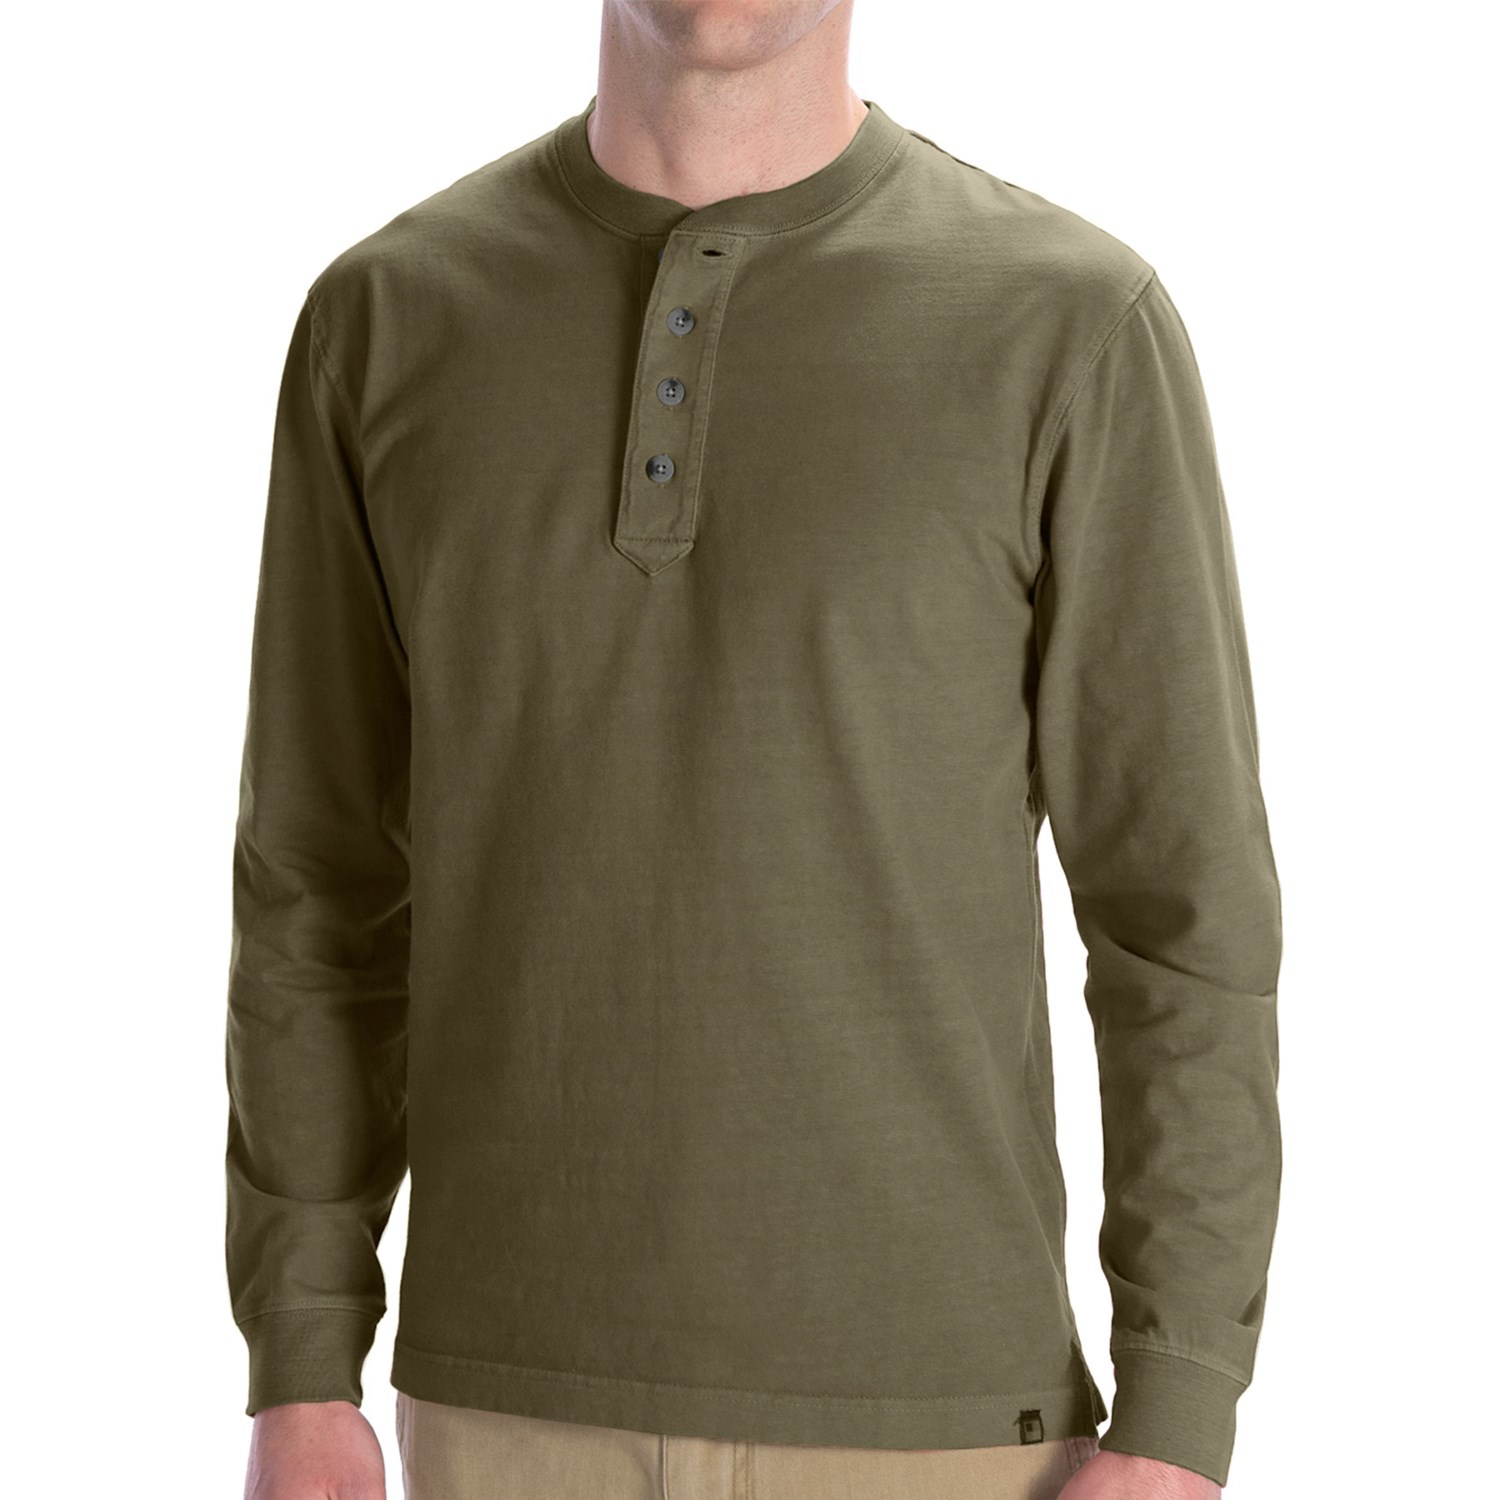 Discover the best Men's Henley Shirts in Best Sellers. Find the top most popular items in Amazon Best Sellers. Keybur Beloved Mens Henley Neck Long Sleeve Popover Daily Look Linen Shirts out of 5 stars $ - $ # MTL Apparel Henley 3-Button Mens Long Sleeve Fashion T-Shirt out of 5 stars